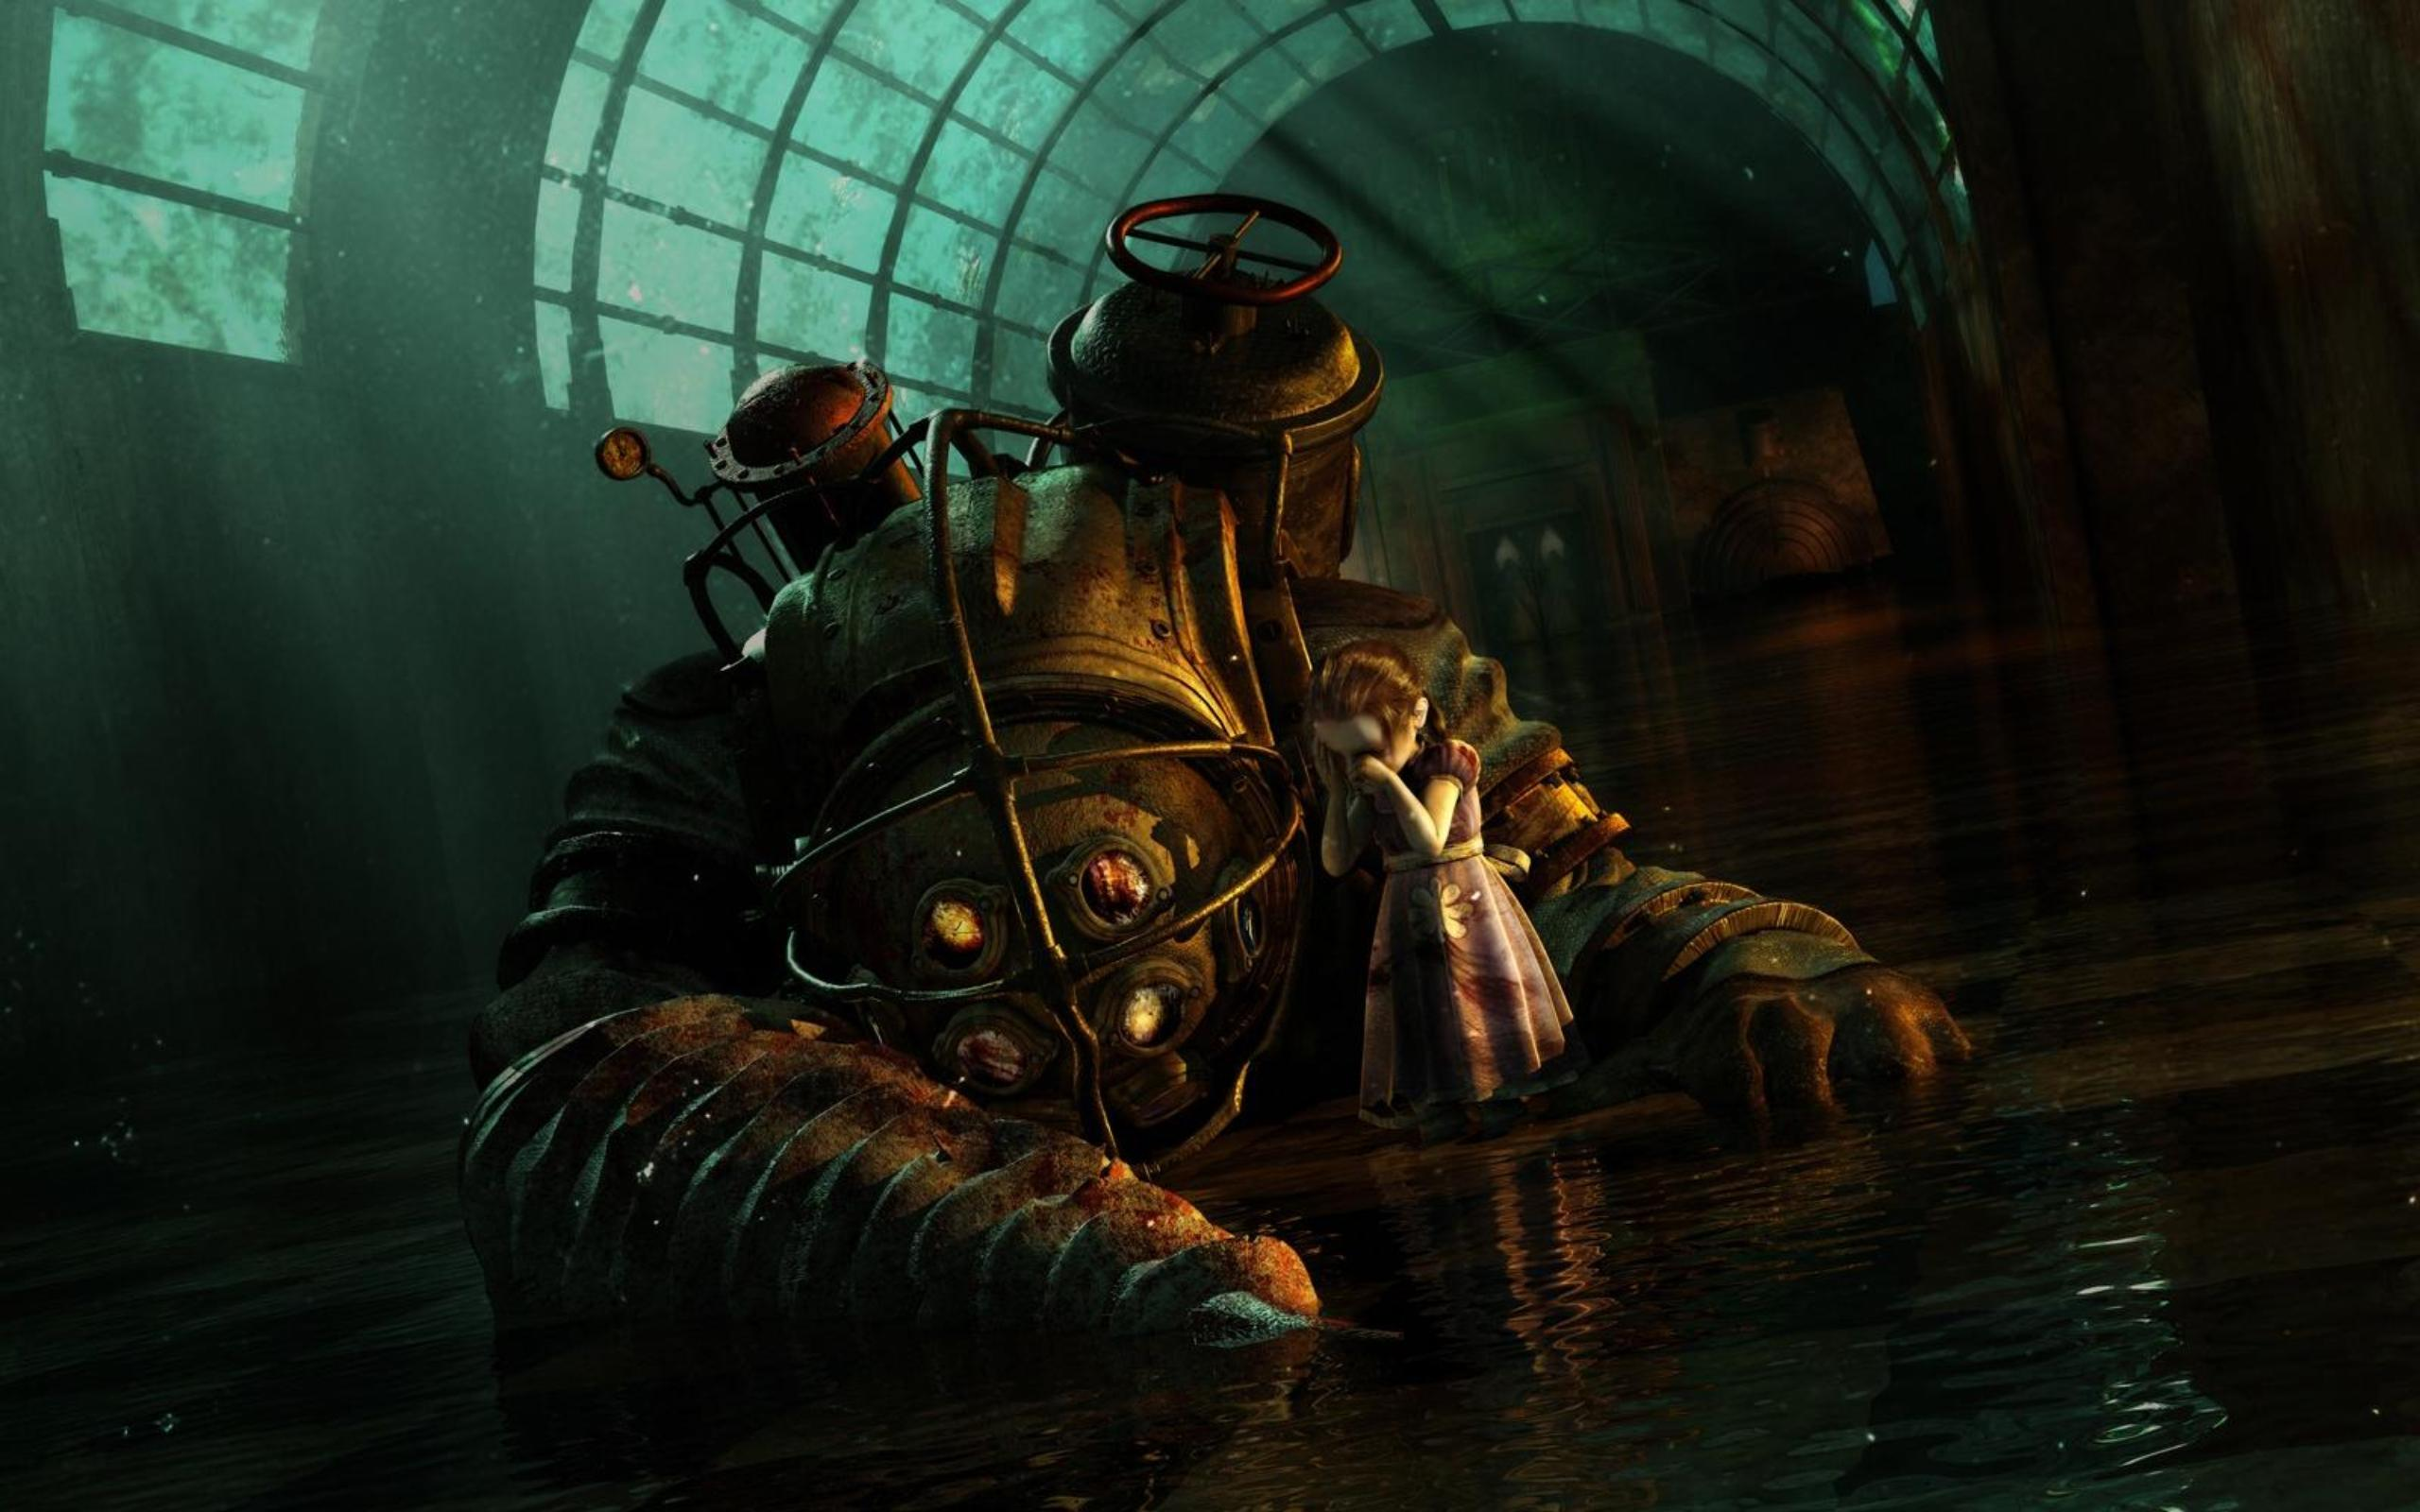 Bioshock Hd Wallpaper  Background Image  2560X1600  Id120843 - Wallpaper Abyss-3667